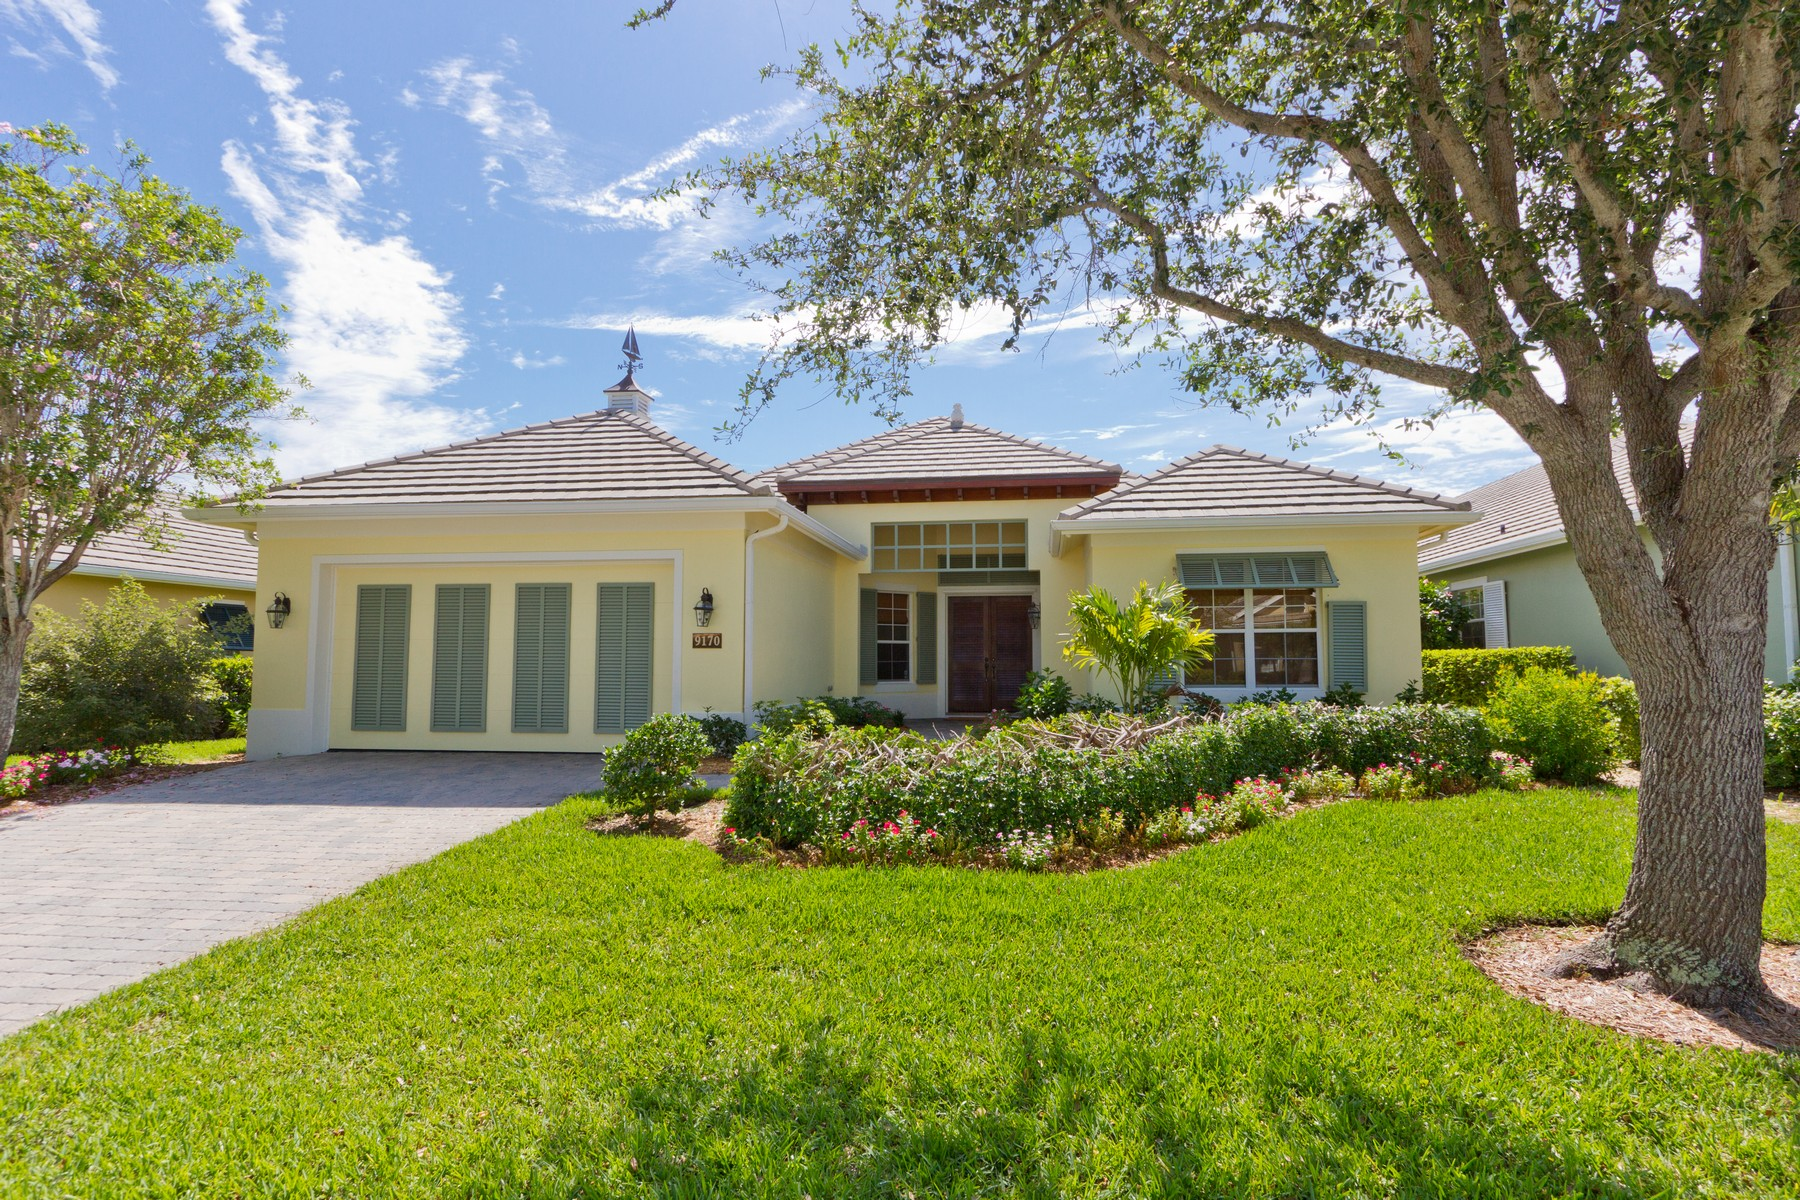 Property for Sale at West Indies Lakefront Beauty 9170 Seasons Terrace Vero Beach, Florida 32963 United States